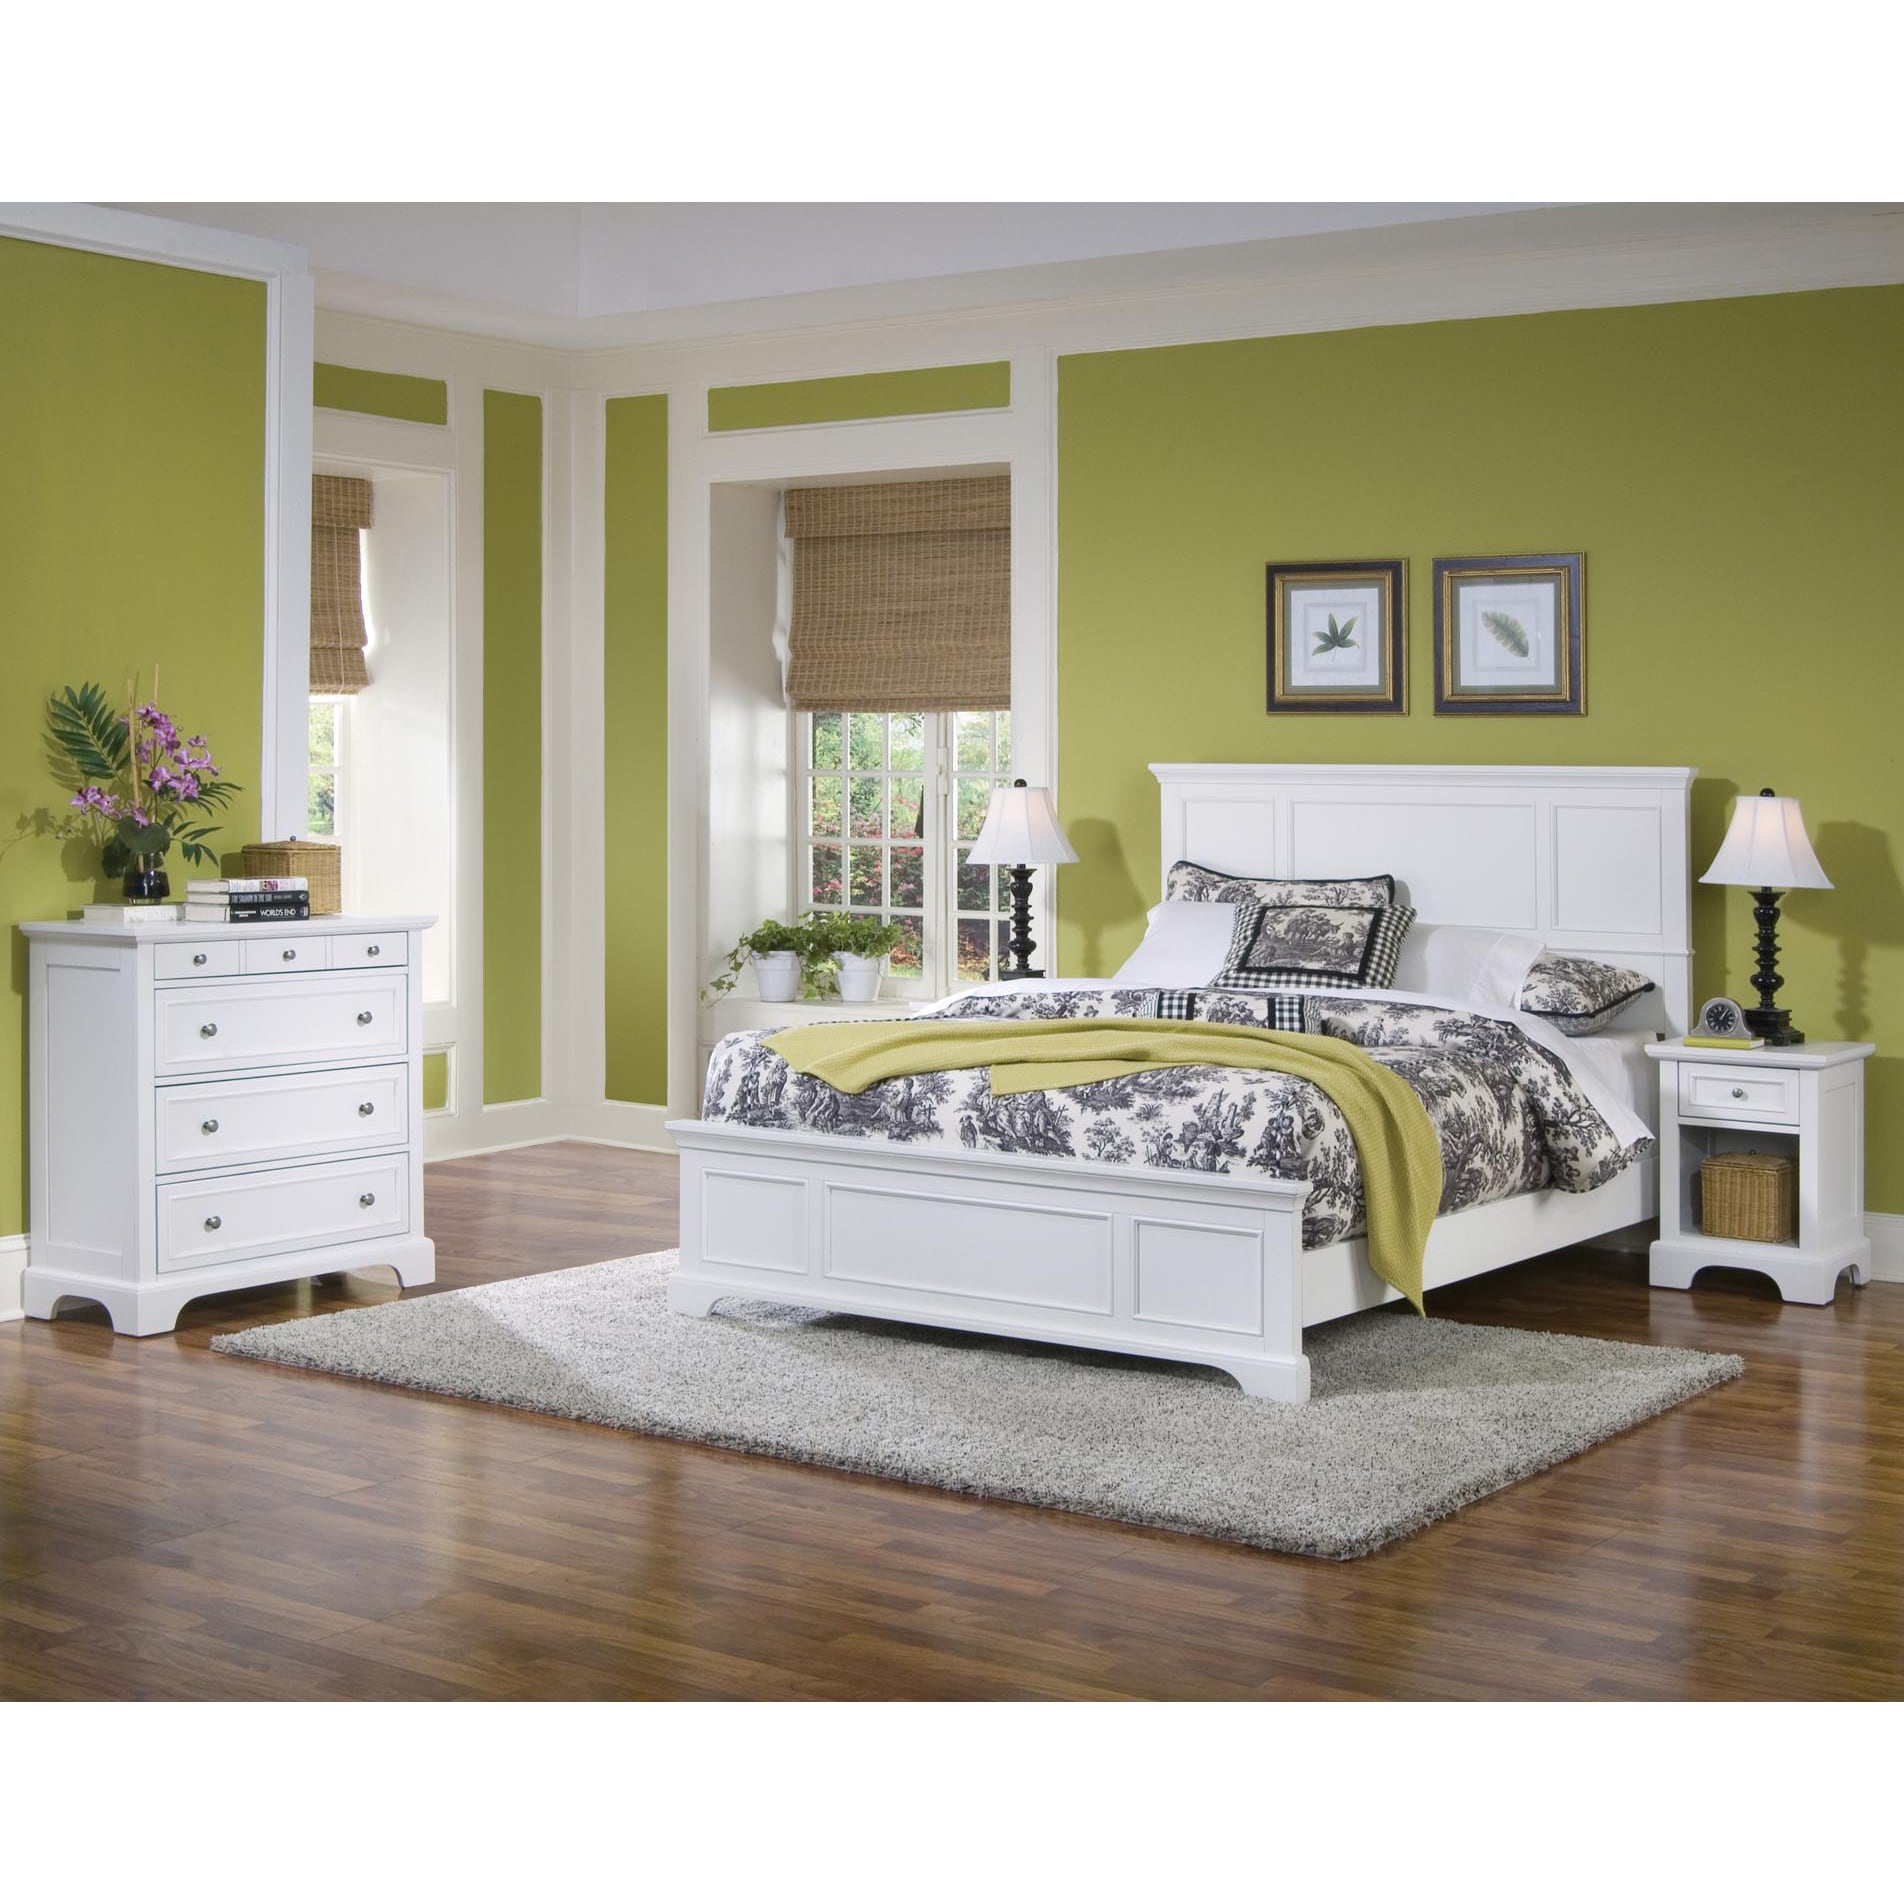 Shop Naples Queen Bed, Nightstand, and Chest Bedroom Set by Home ...